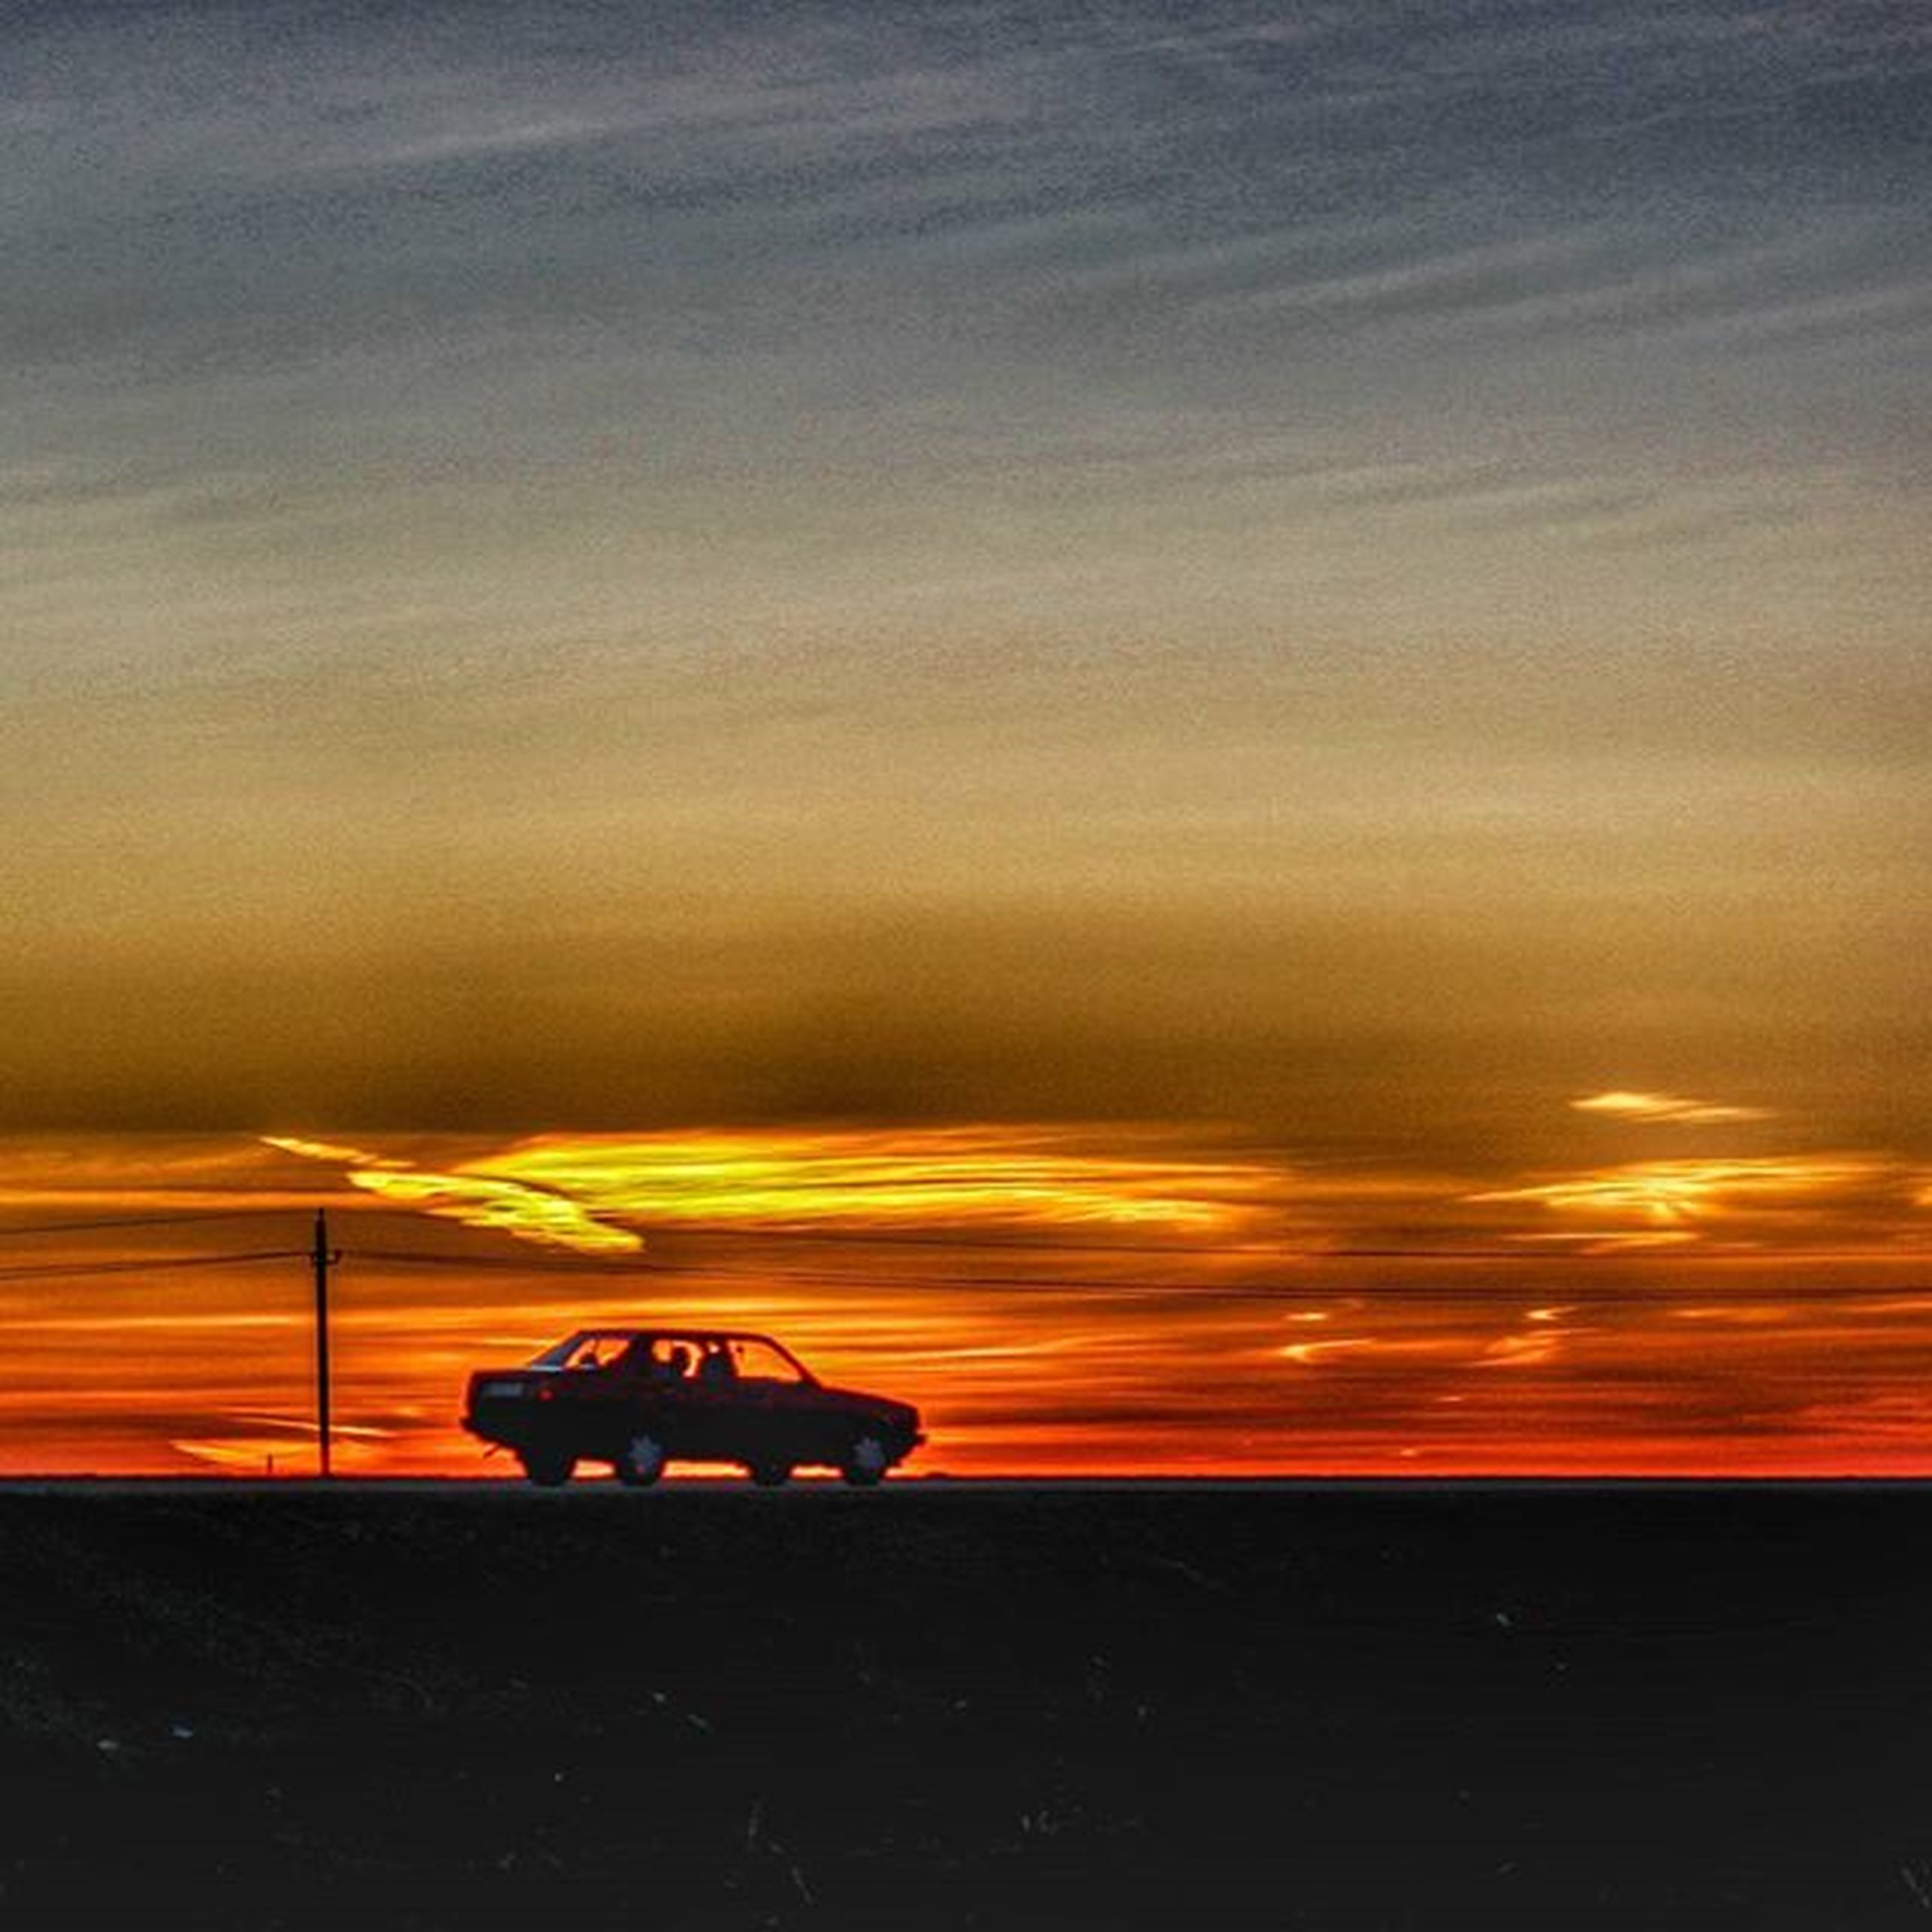 sunset, transportation, orange color, mode of transport, land vehicle, sky, silhouette, scenics, cloud - sky, beauty in nature, sea, tranquility, car, nature, tranquil scene, travel, horizon over water, idyllic, water, dramatic sky